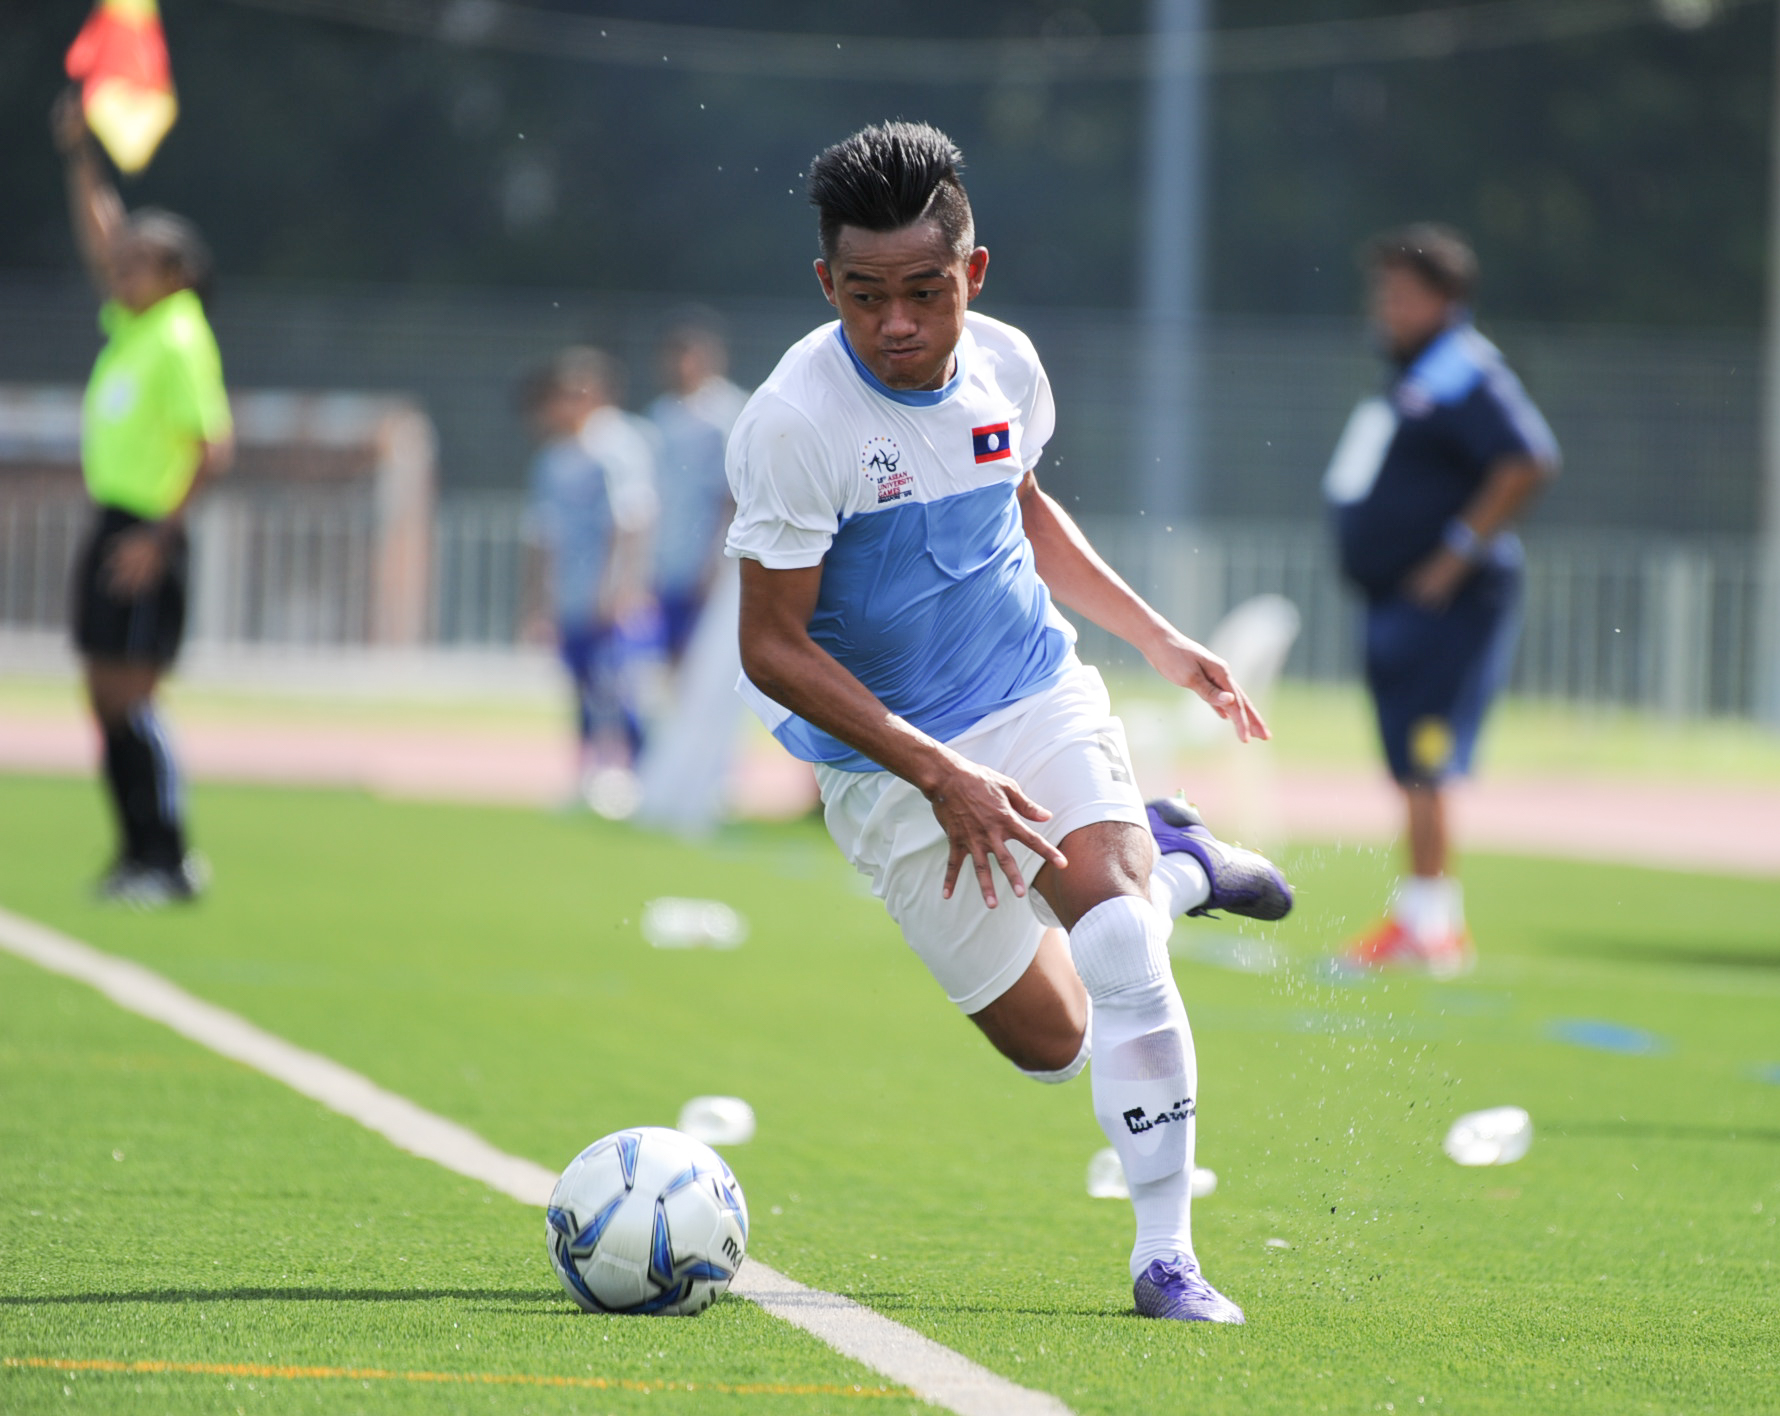 A Laotian player keeps the ball in play during the soccer competition of the ASEAN University Games at the Nanyang Technological University.